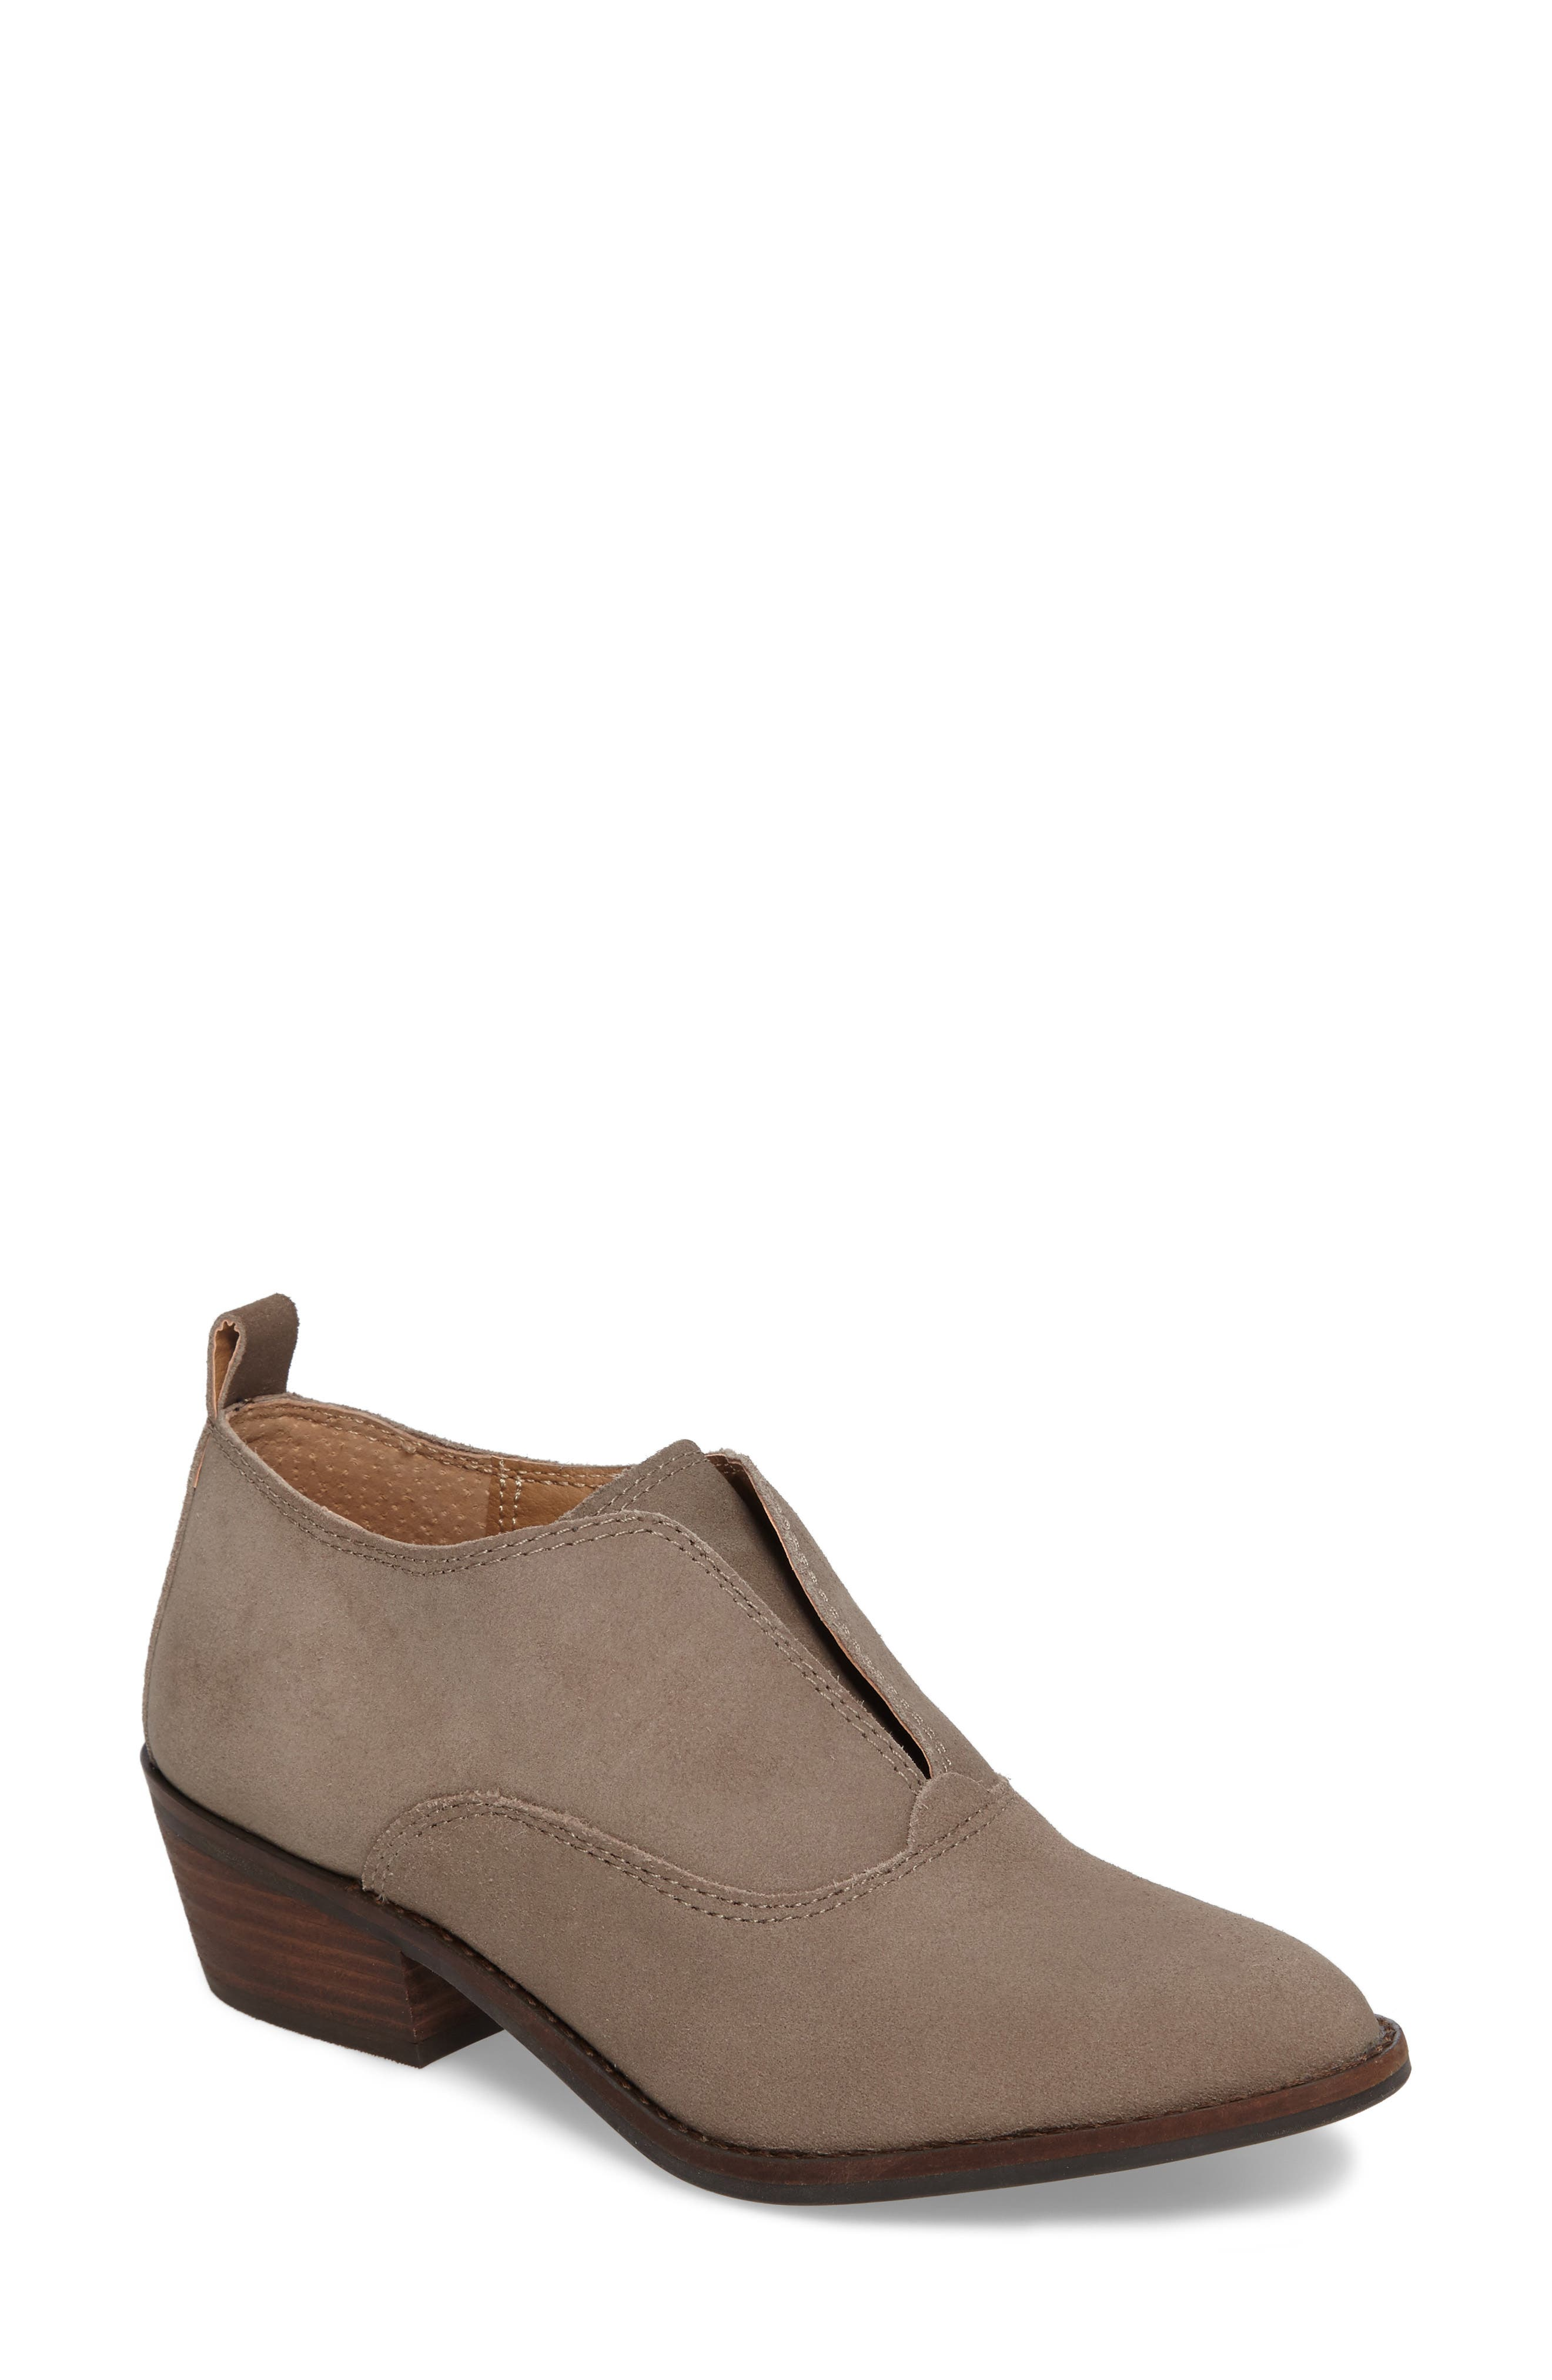 Alternate Image 1 Selected - Lucky Brand Fimberly Oxford (Women)